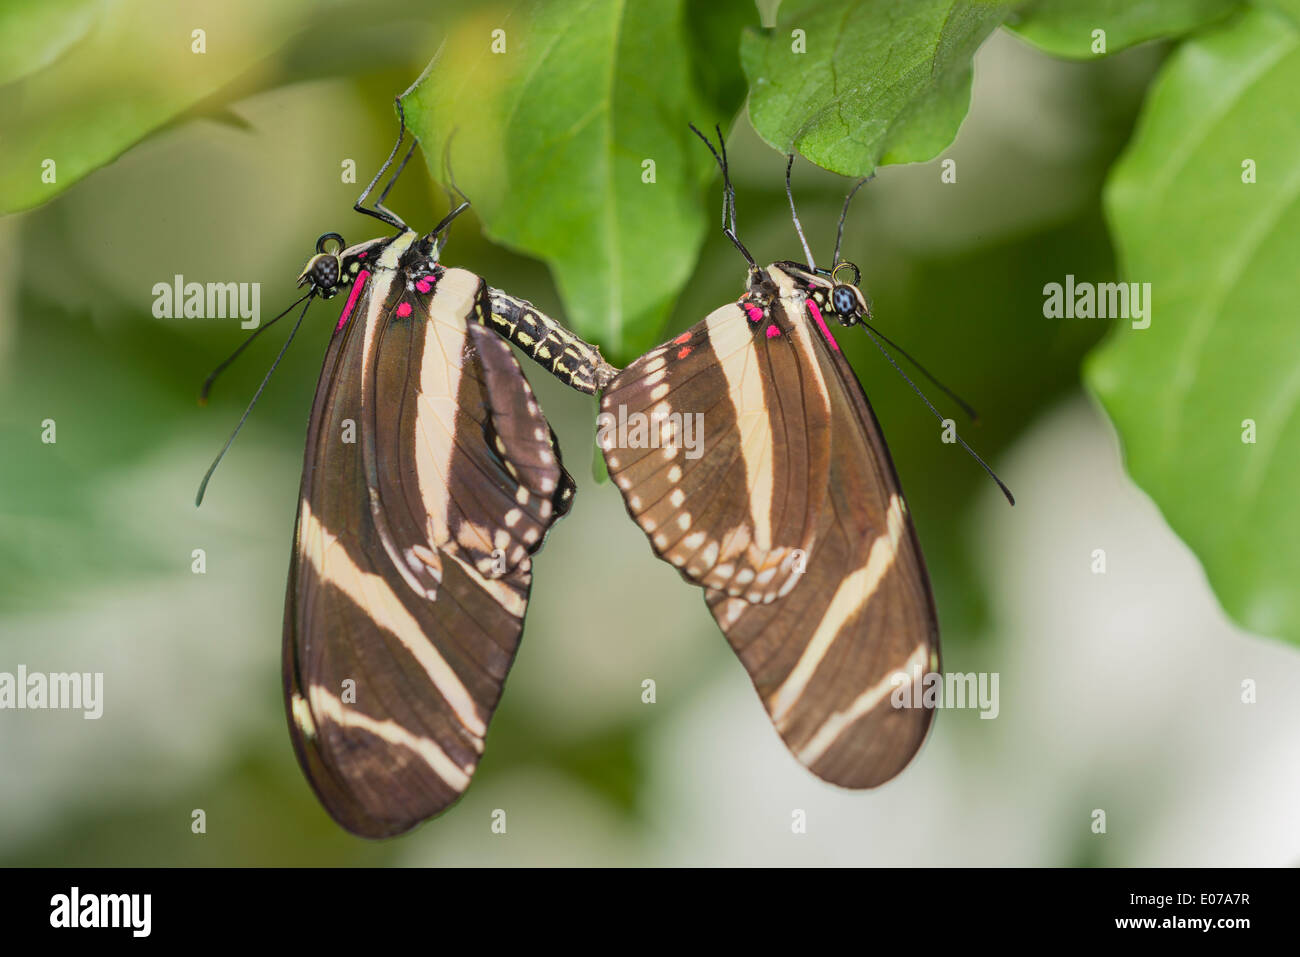 A pair of mating Zebra Longwings - Stock Image